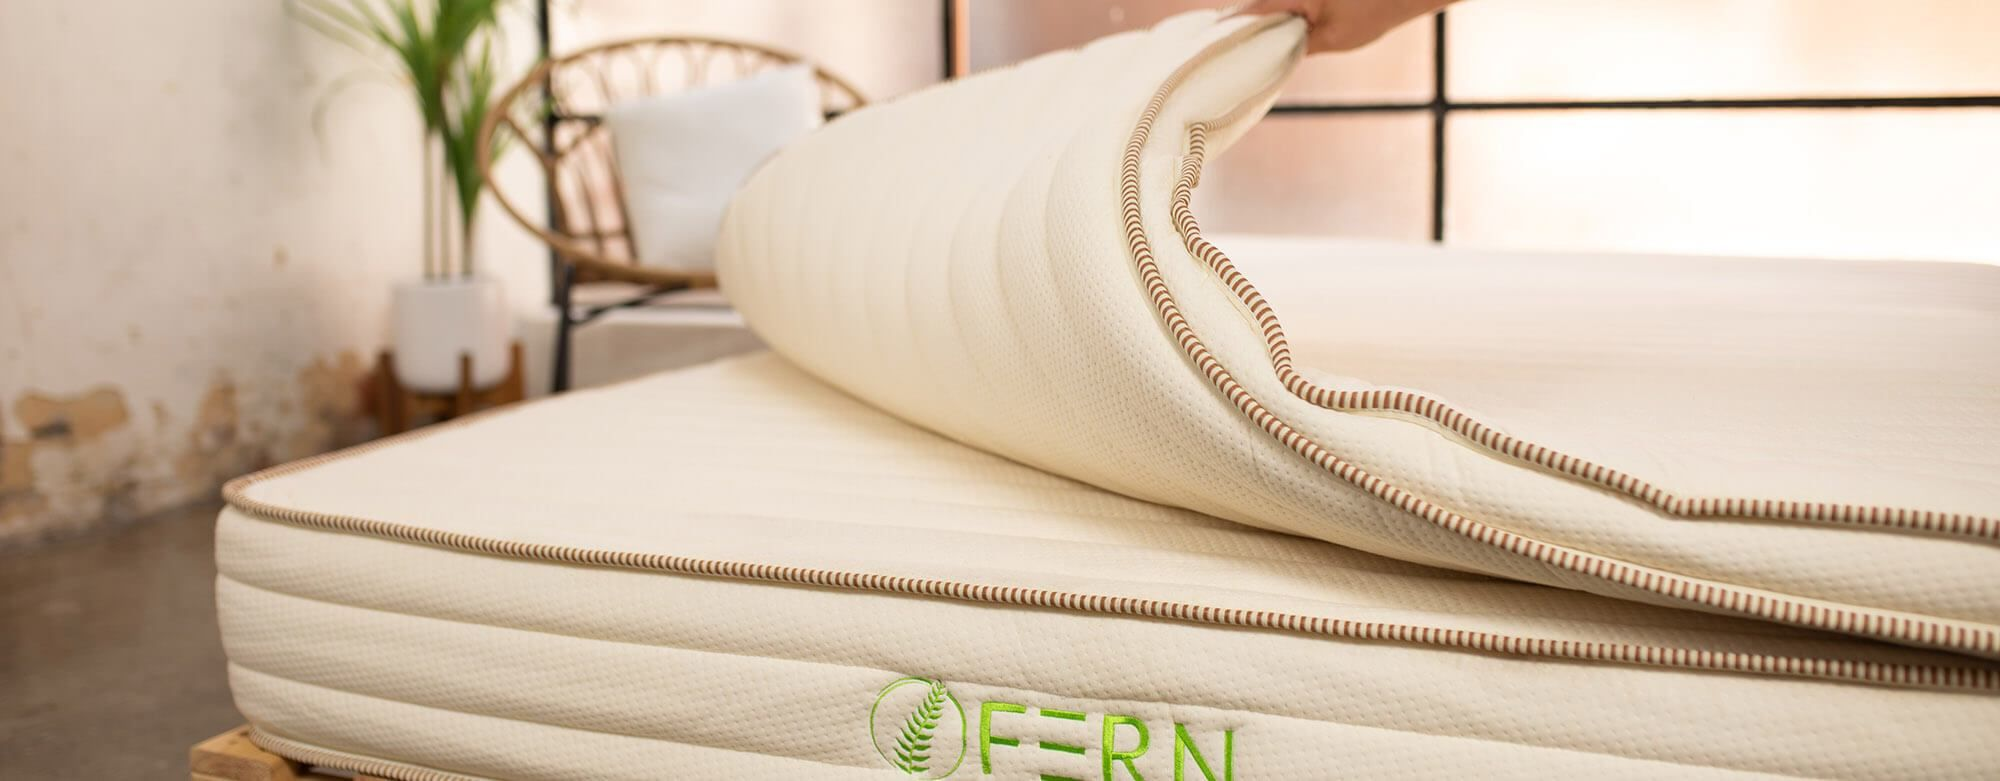 Best Mattress Toppers Australia Best Luxury Fern Green Mattress Topper Perth Australia Fern